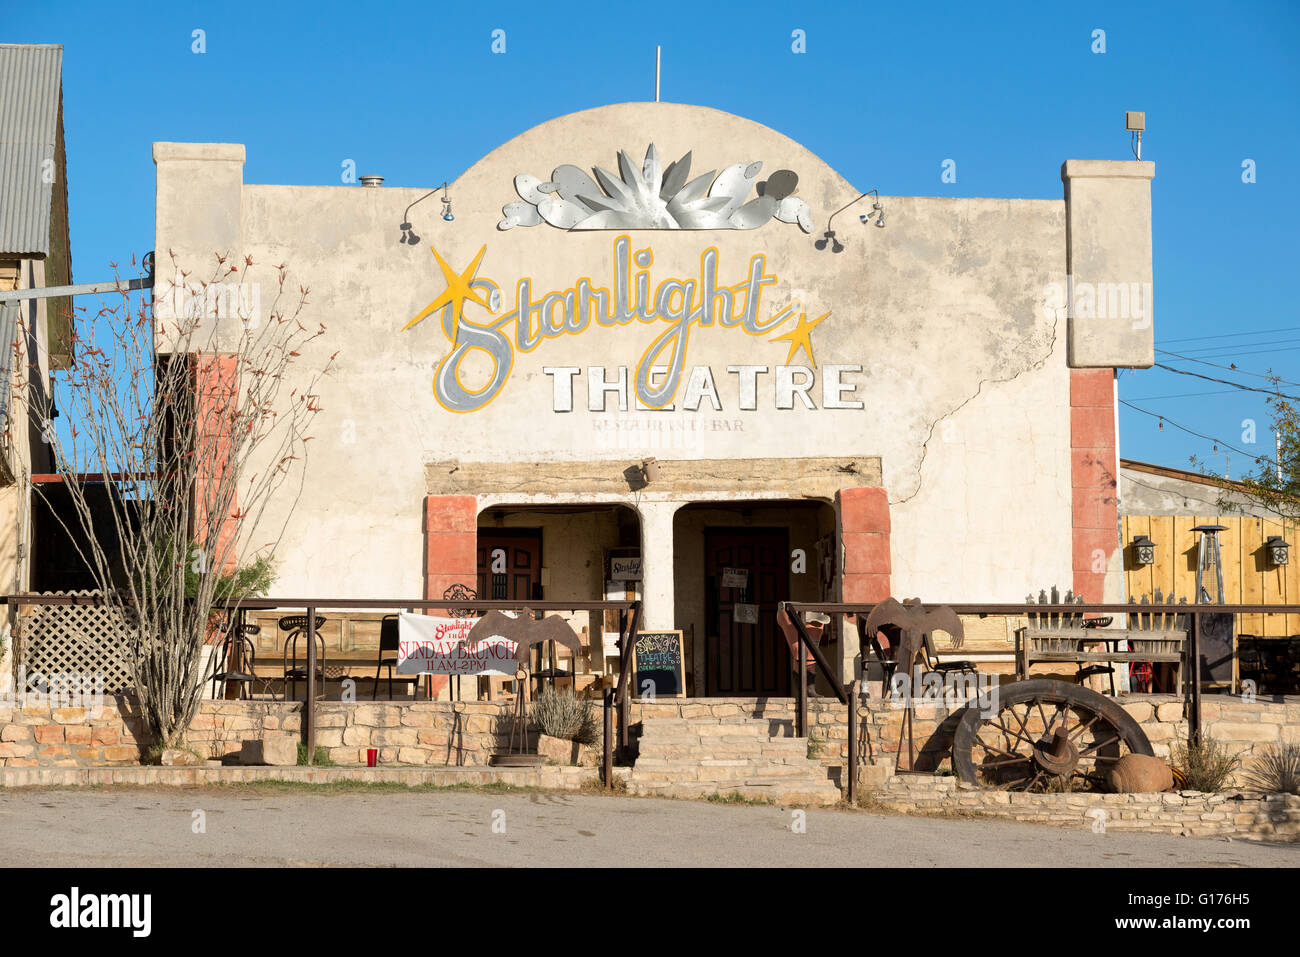 Starlight Theatre Restaurant And Saloon In Terlingua, Texas.